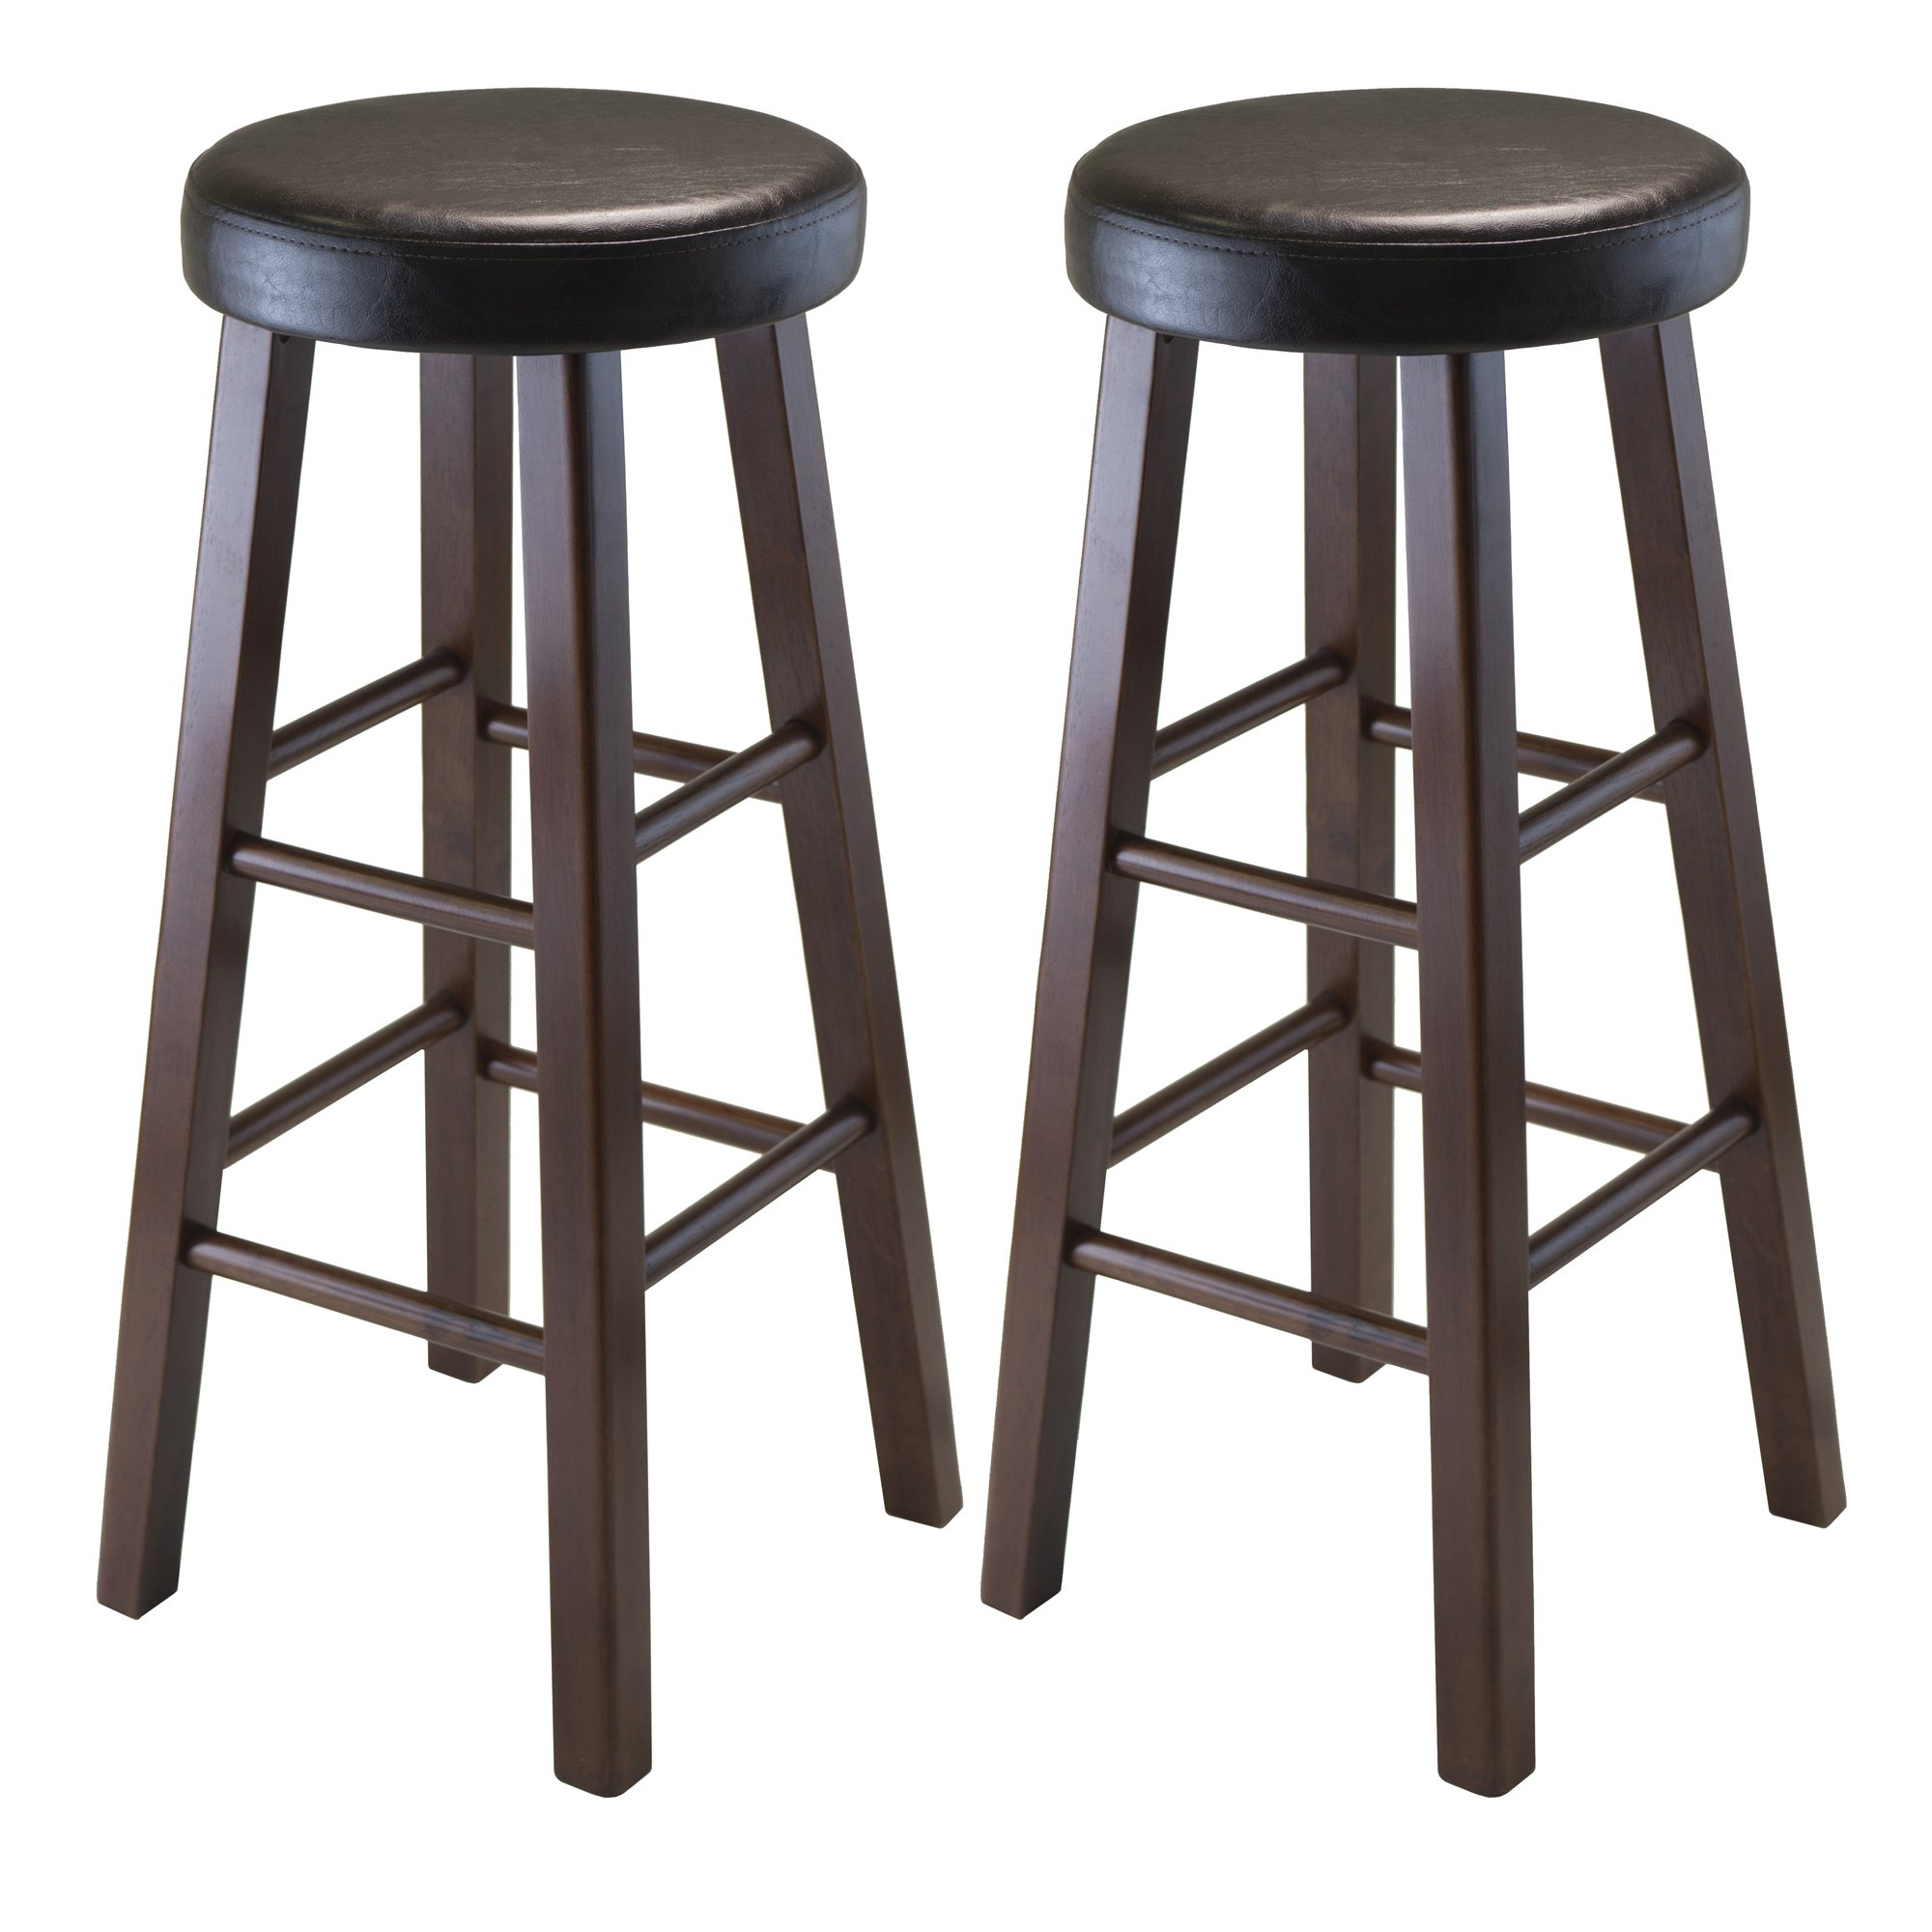 Winsome Wood Marta Assembled Round Bar Stool with PU Leather Cushion Seat and Square Legs, 30.3-Inch, Set of 2 by Winsome Wood